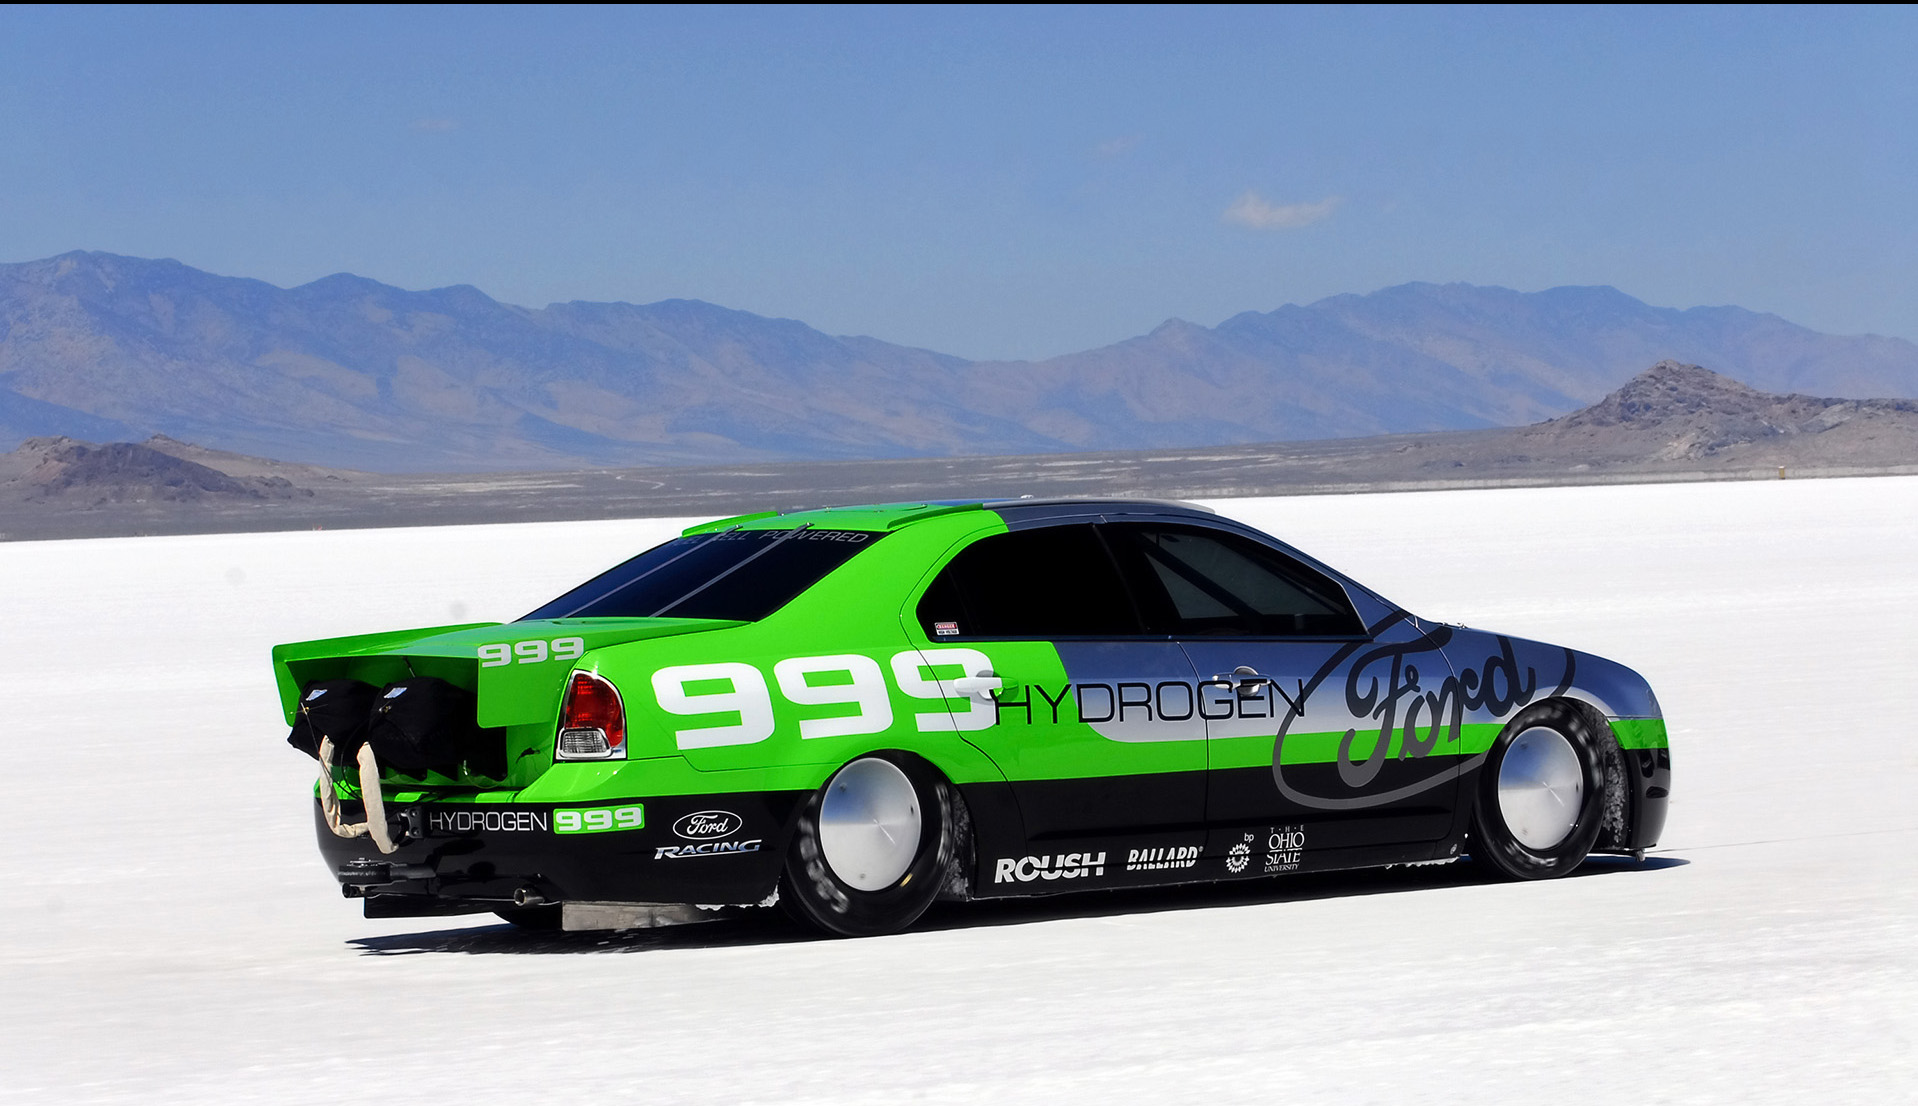 Fusion Auto Auction >> 2008 Ford Fusion Hydrogen 999 Land Speed Record News and Information